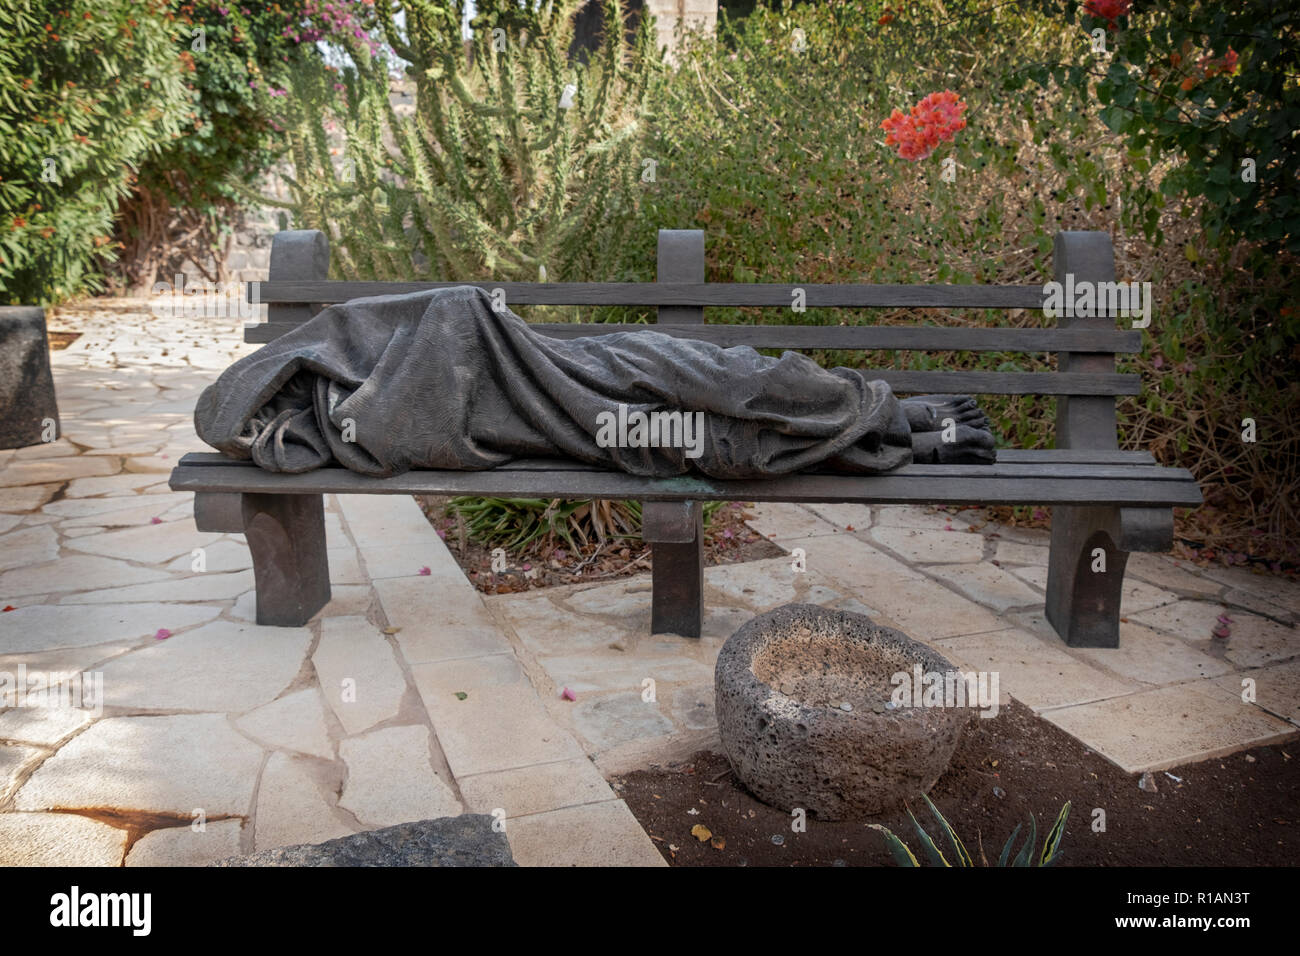 A statue of Homeless Jesus on the grounds of the Church of Saint Peter in ancient Caparnaum on the Sea of Galilee, Israel. - Stock Image